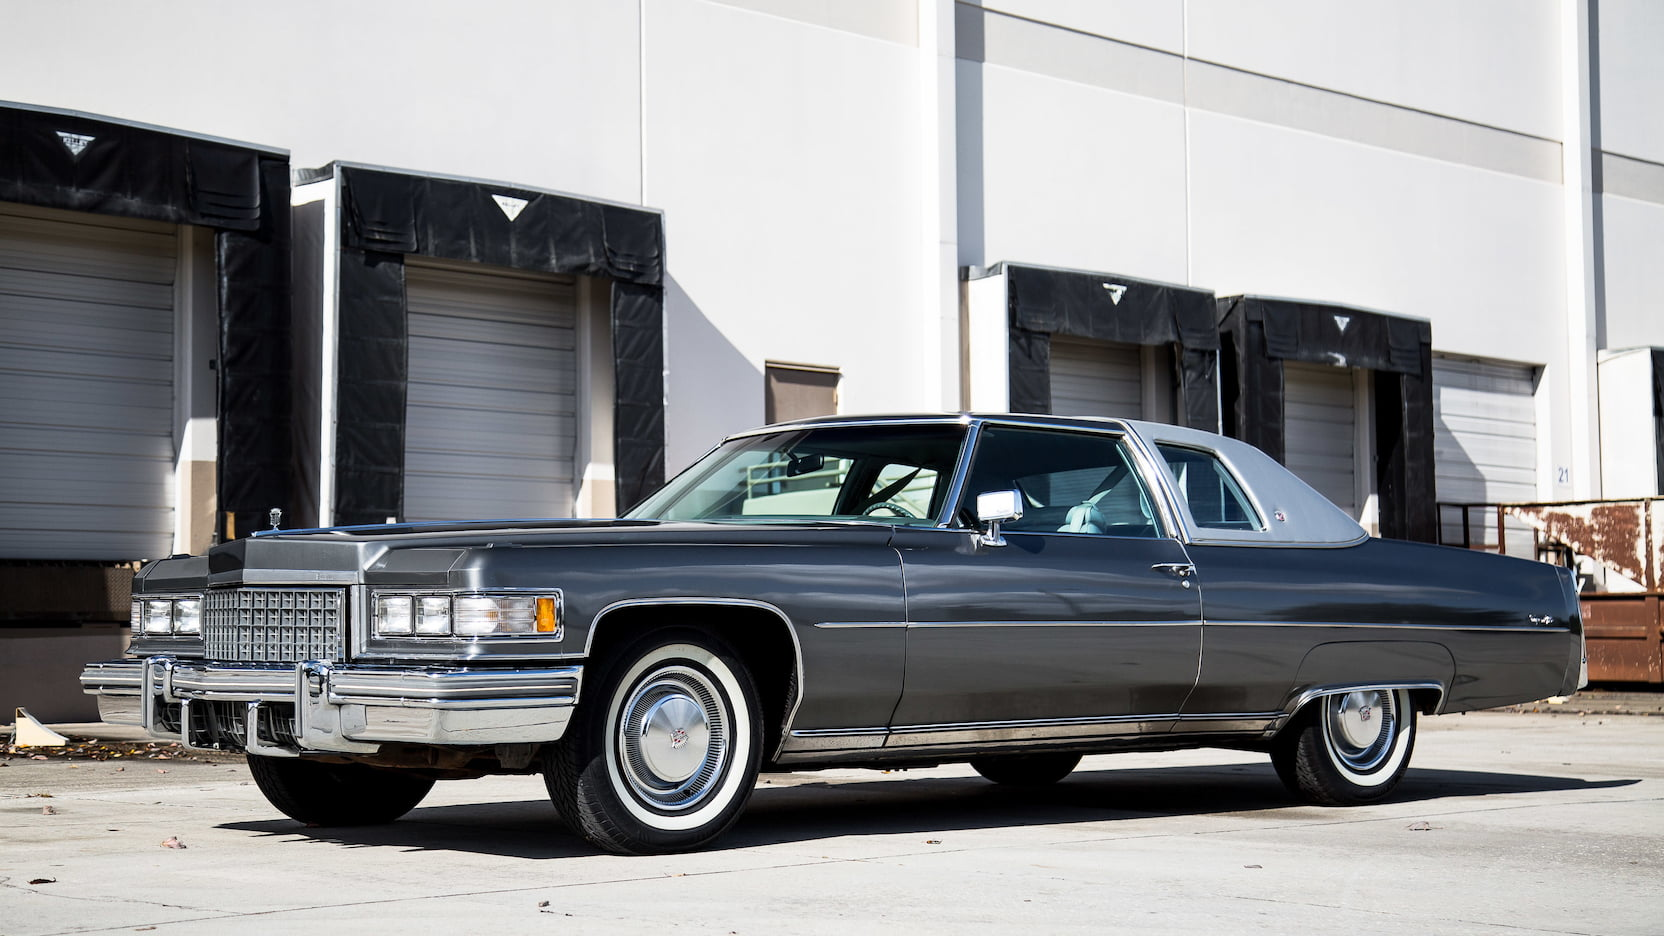 1976 Cadillac Coupe DeVille 3/4 front silver